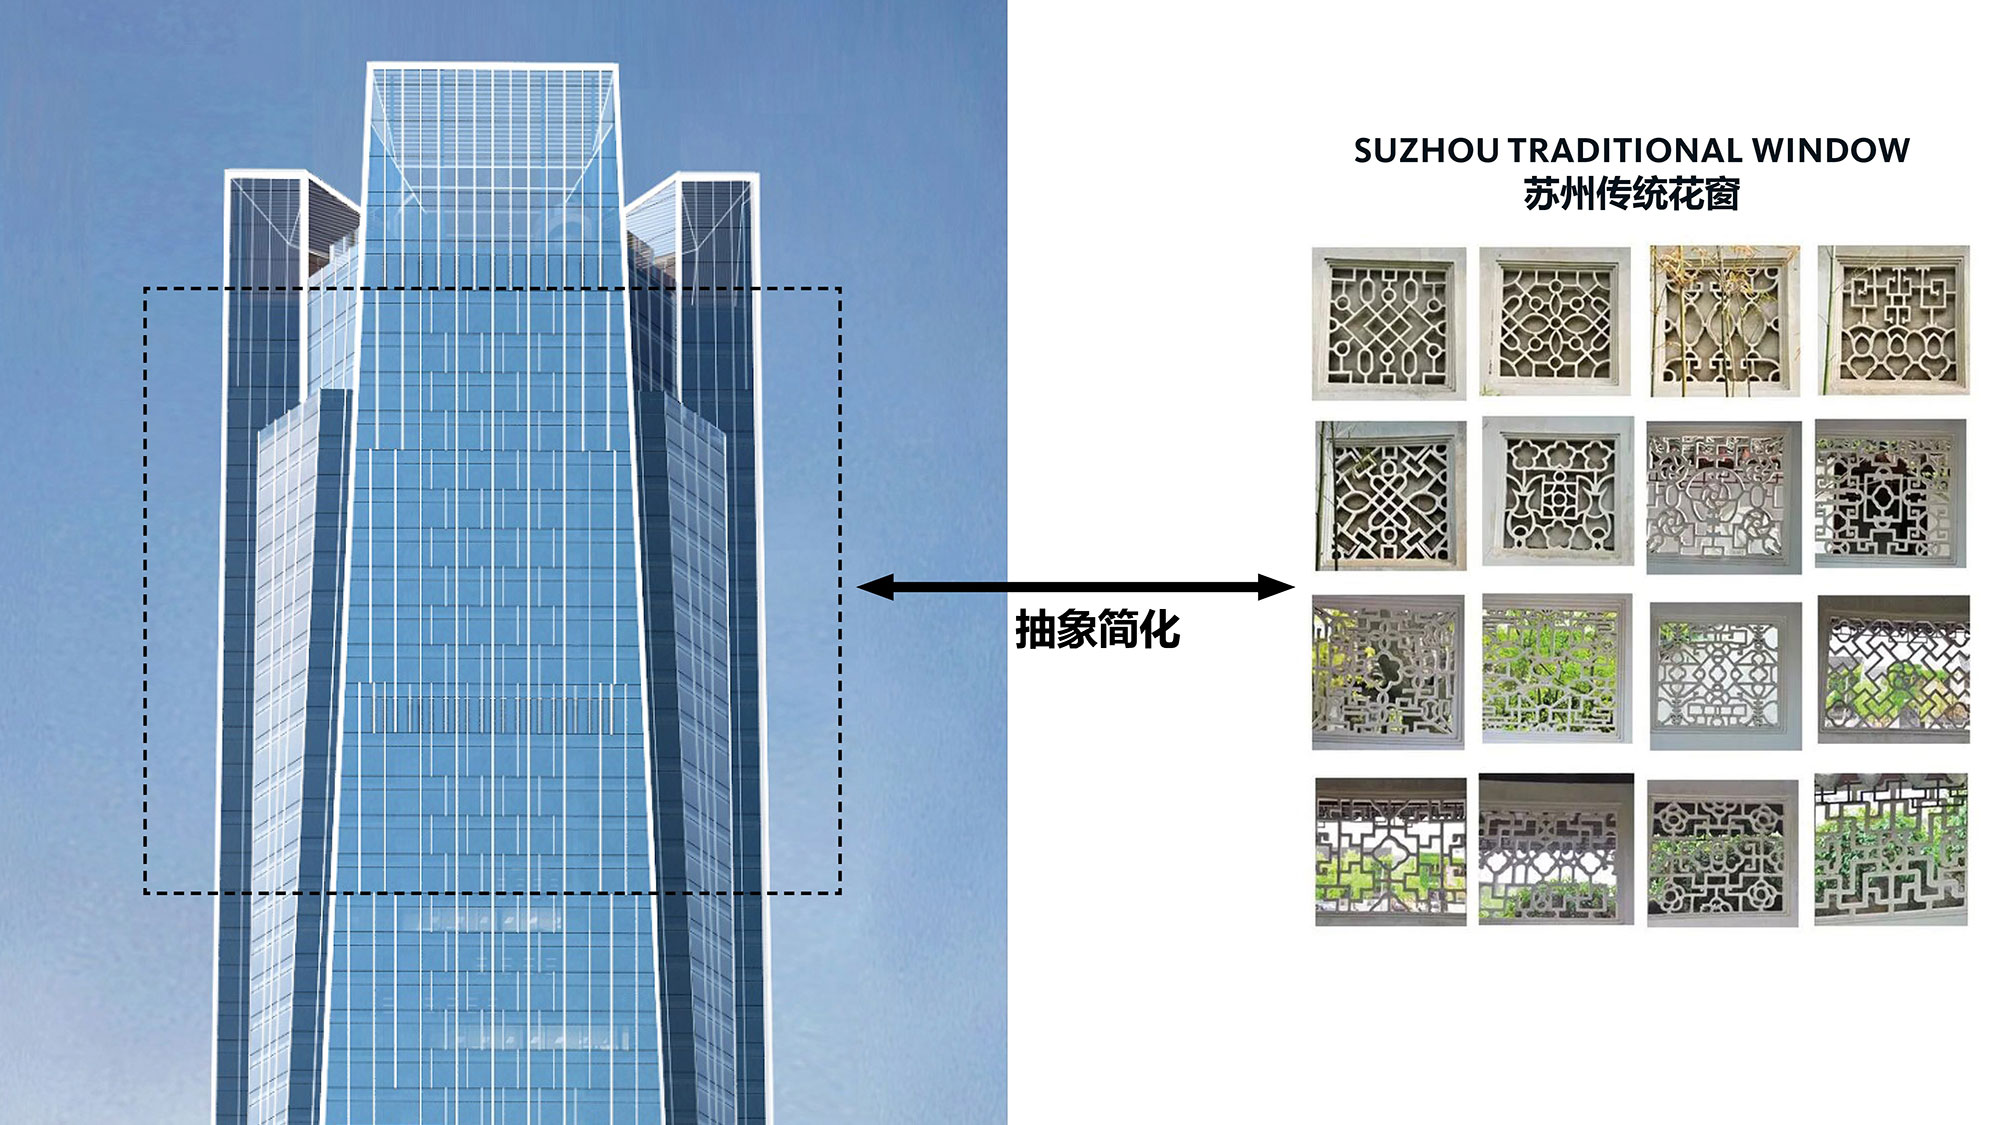 A close up of the curtain wall shows how the design used traditional Suzhou culture elements